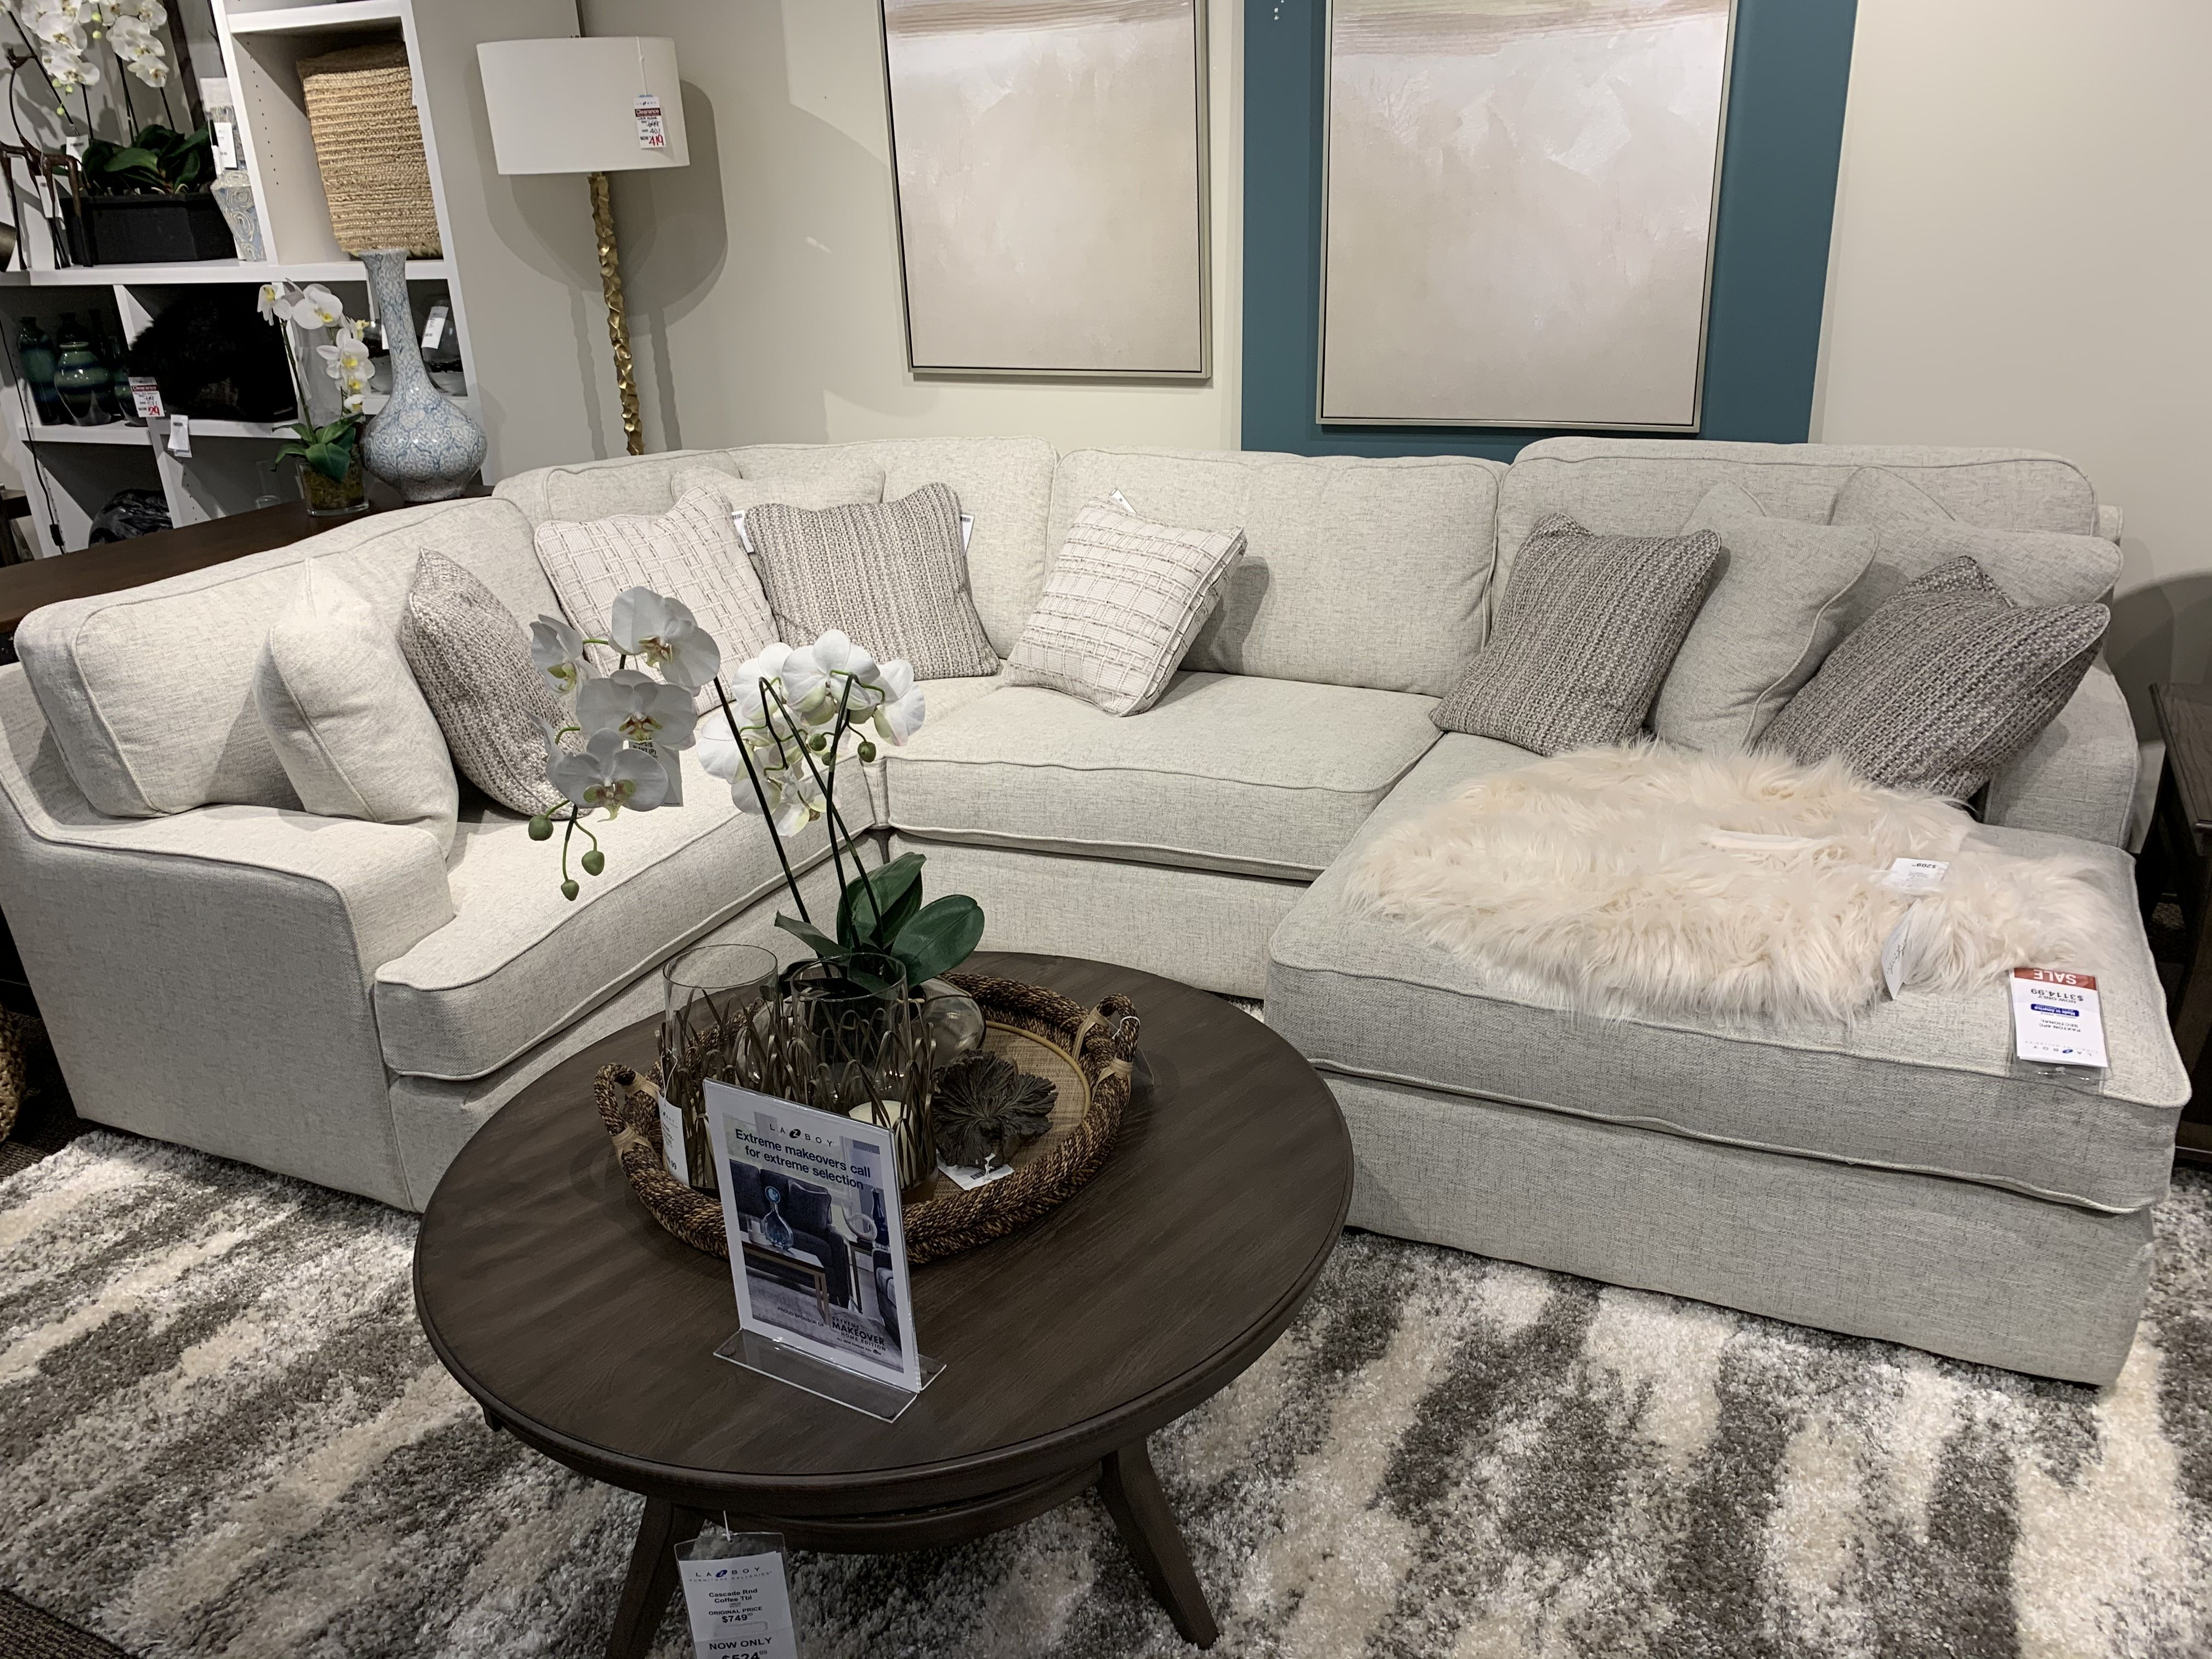 Lazy Boy Paxton Sectional Living Room Sofa Design Couches Living Room Living Room Sofa [ 3024 x 4032 Pixel ]